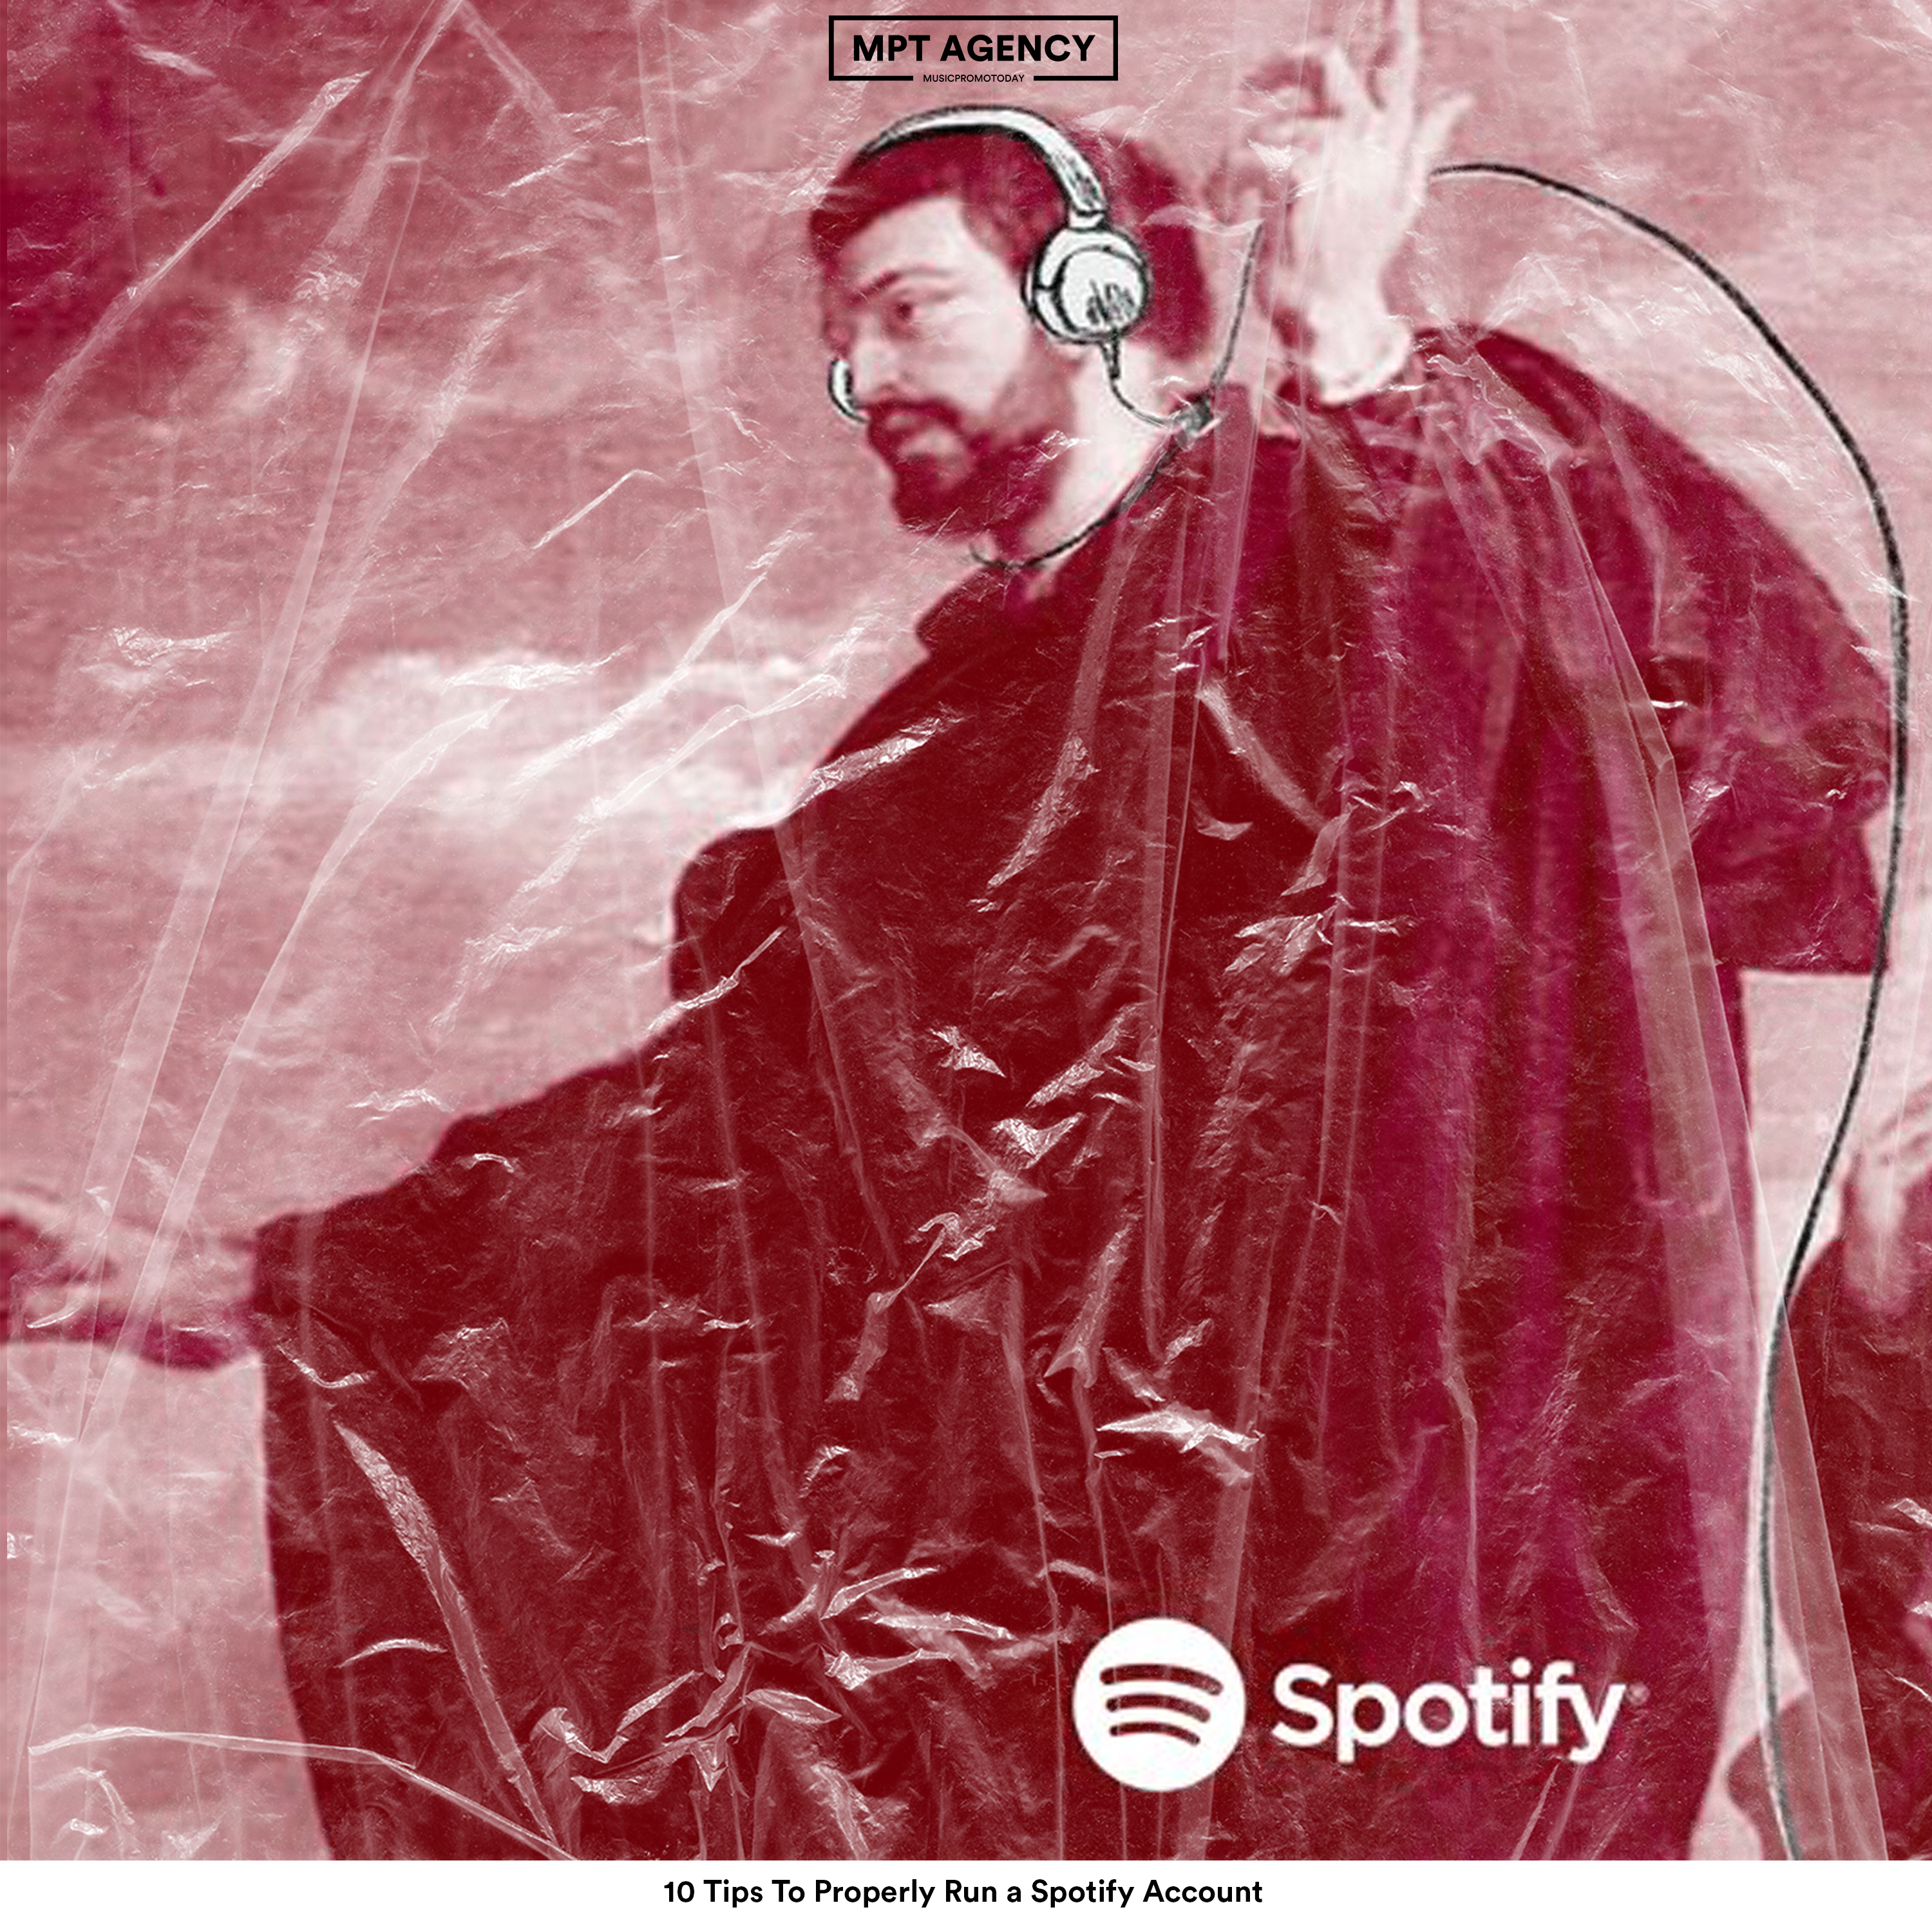 10 Tips To Properly Run a Spotify Account